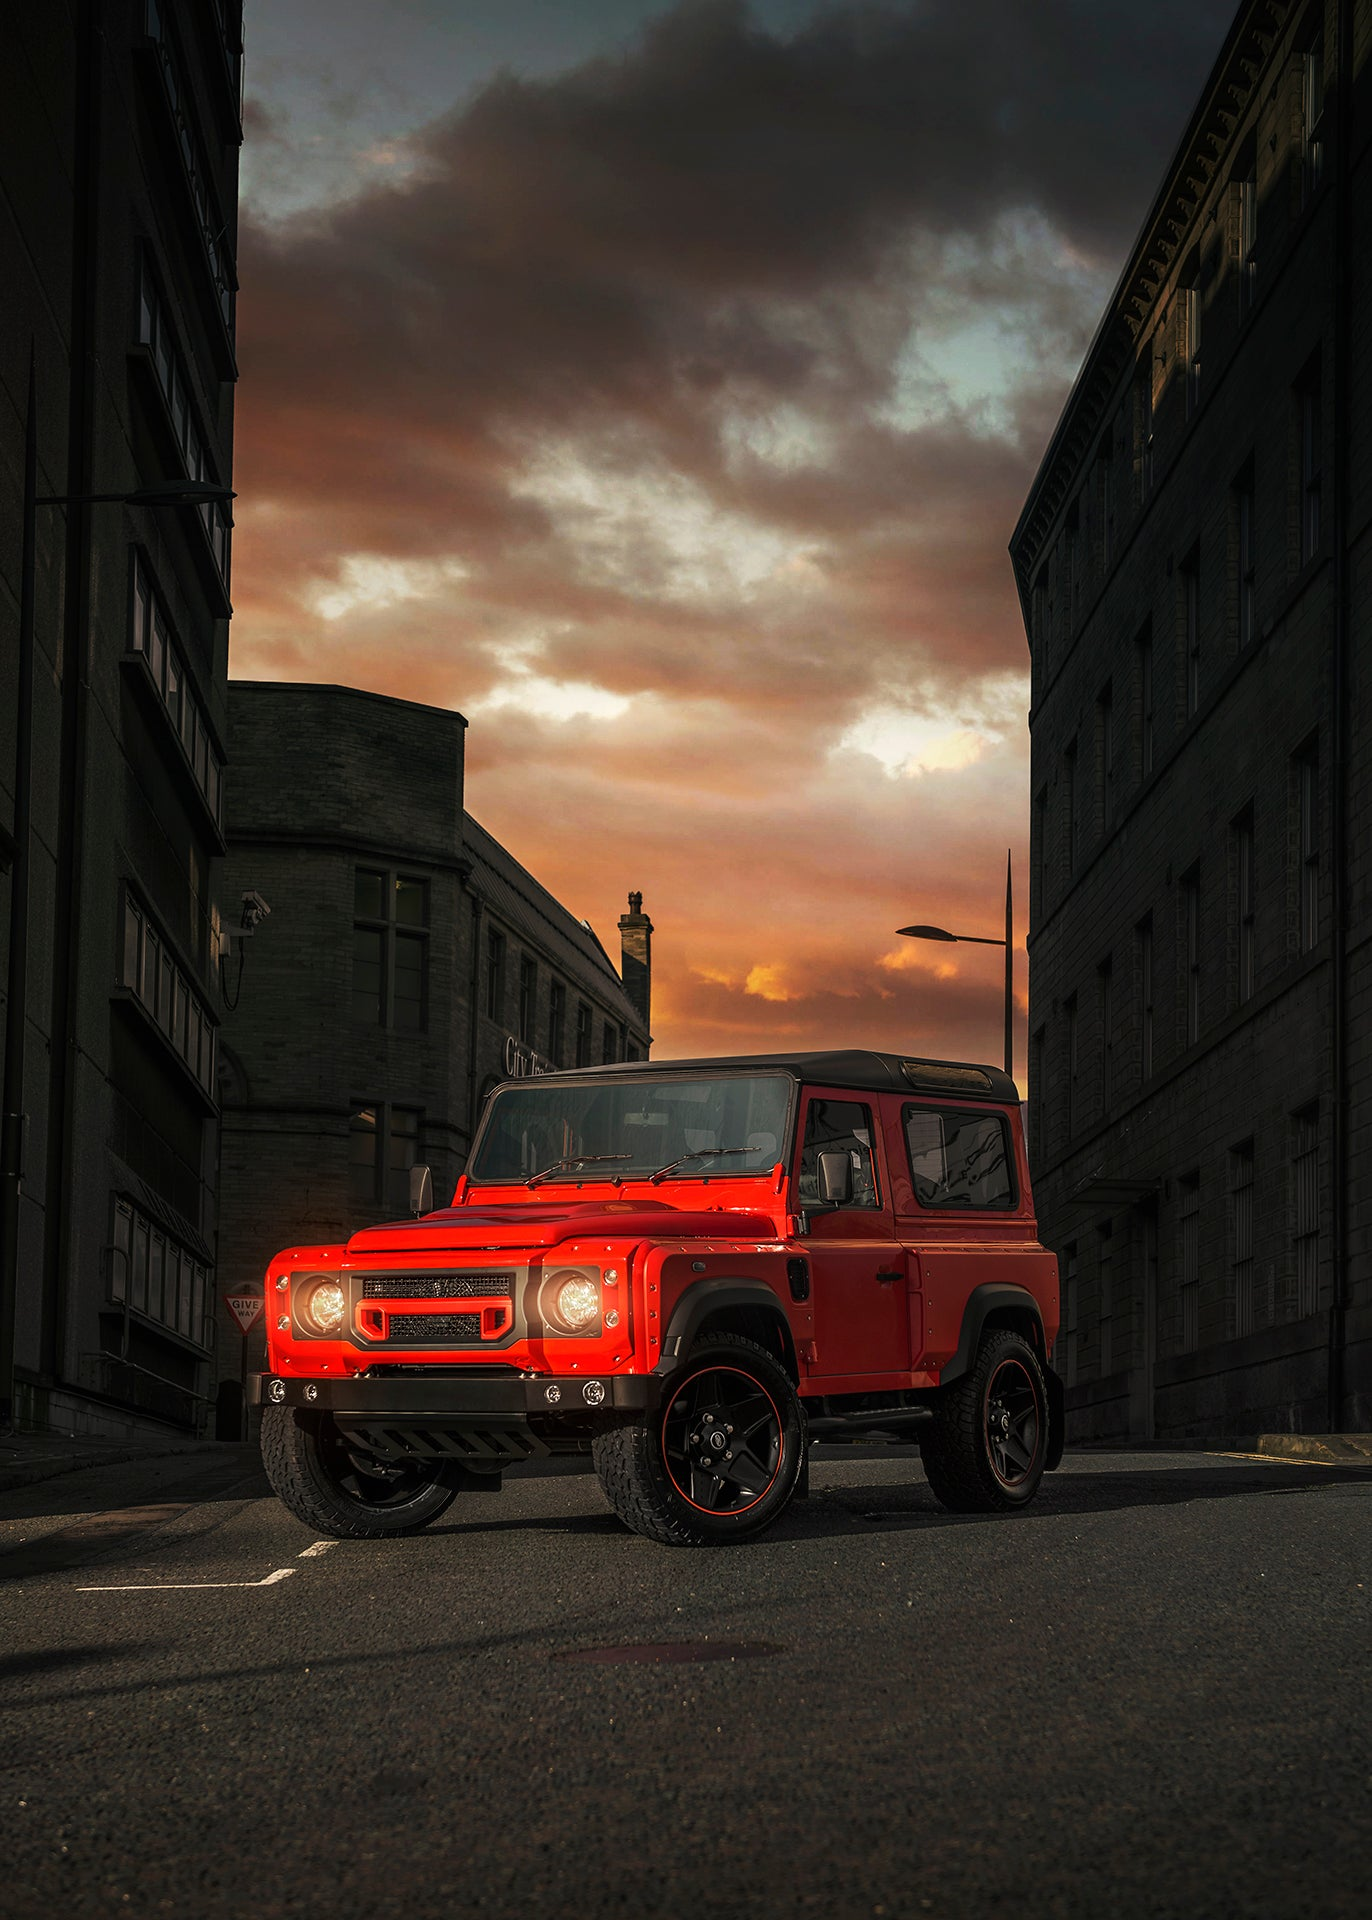 Chelsea Truck Company Lava Orange Defender Is Ready To Erupt!